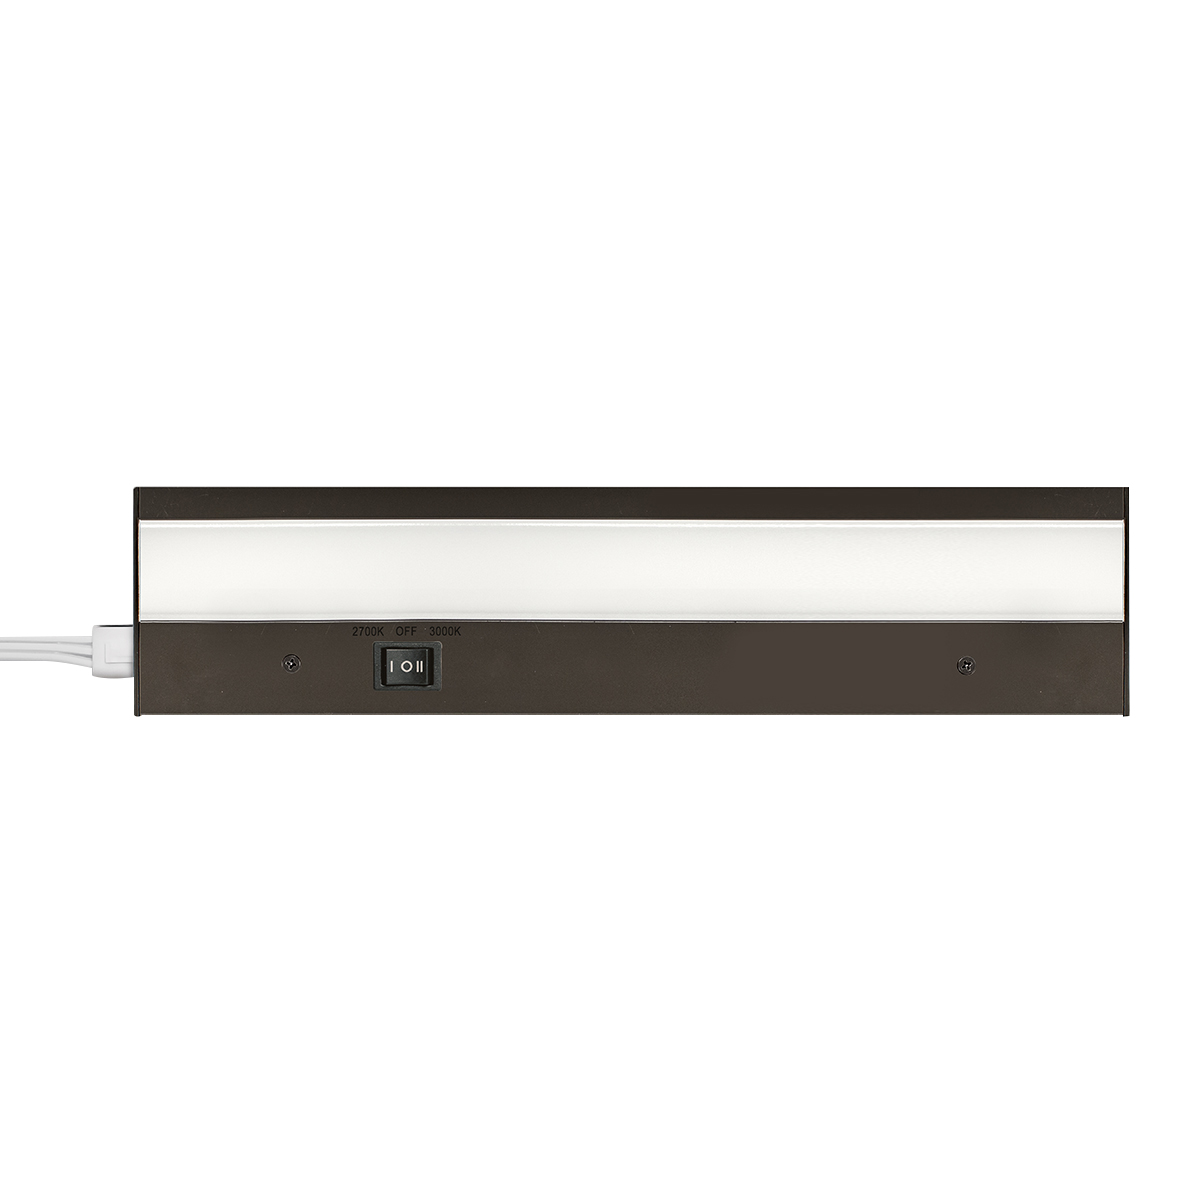 duo-ac-led-color-option-light-bars